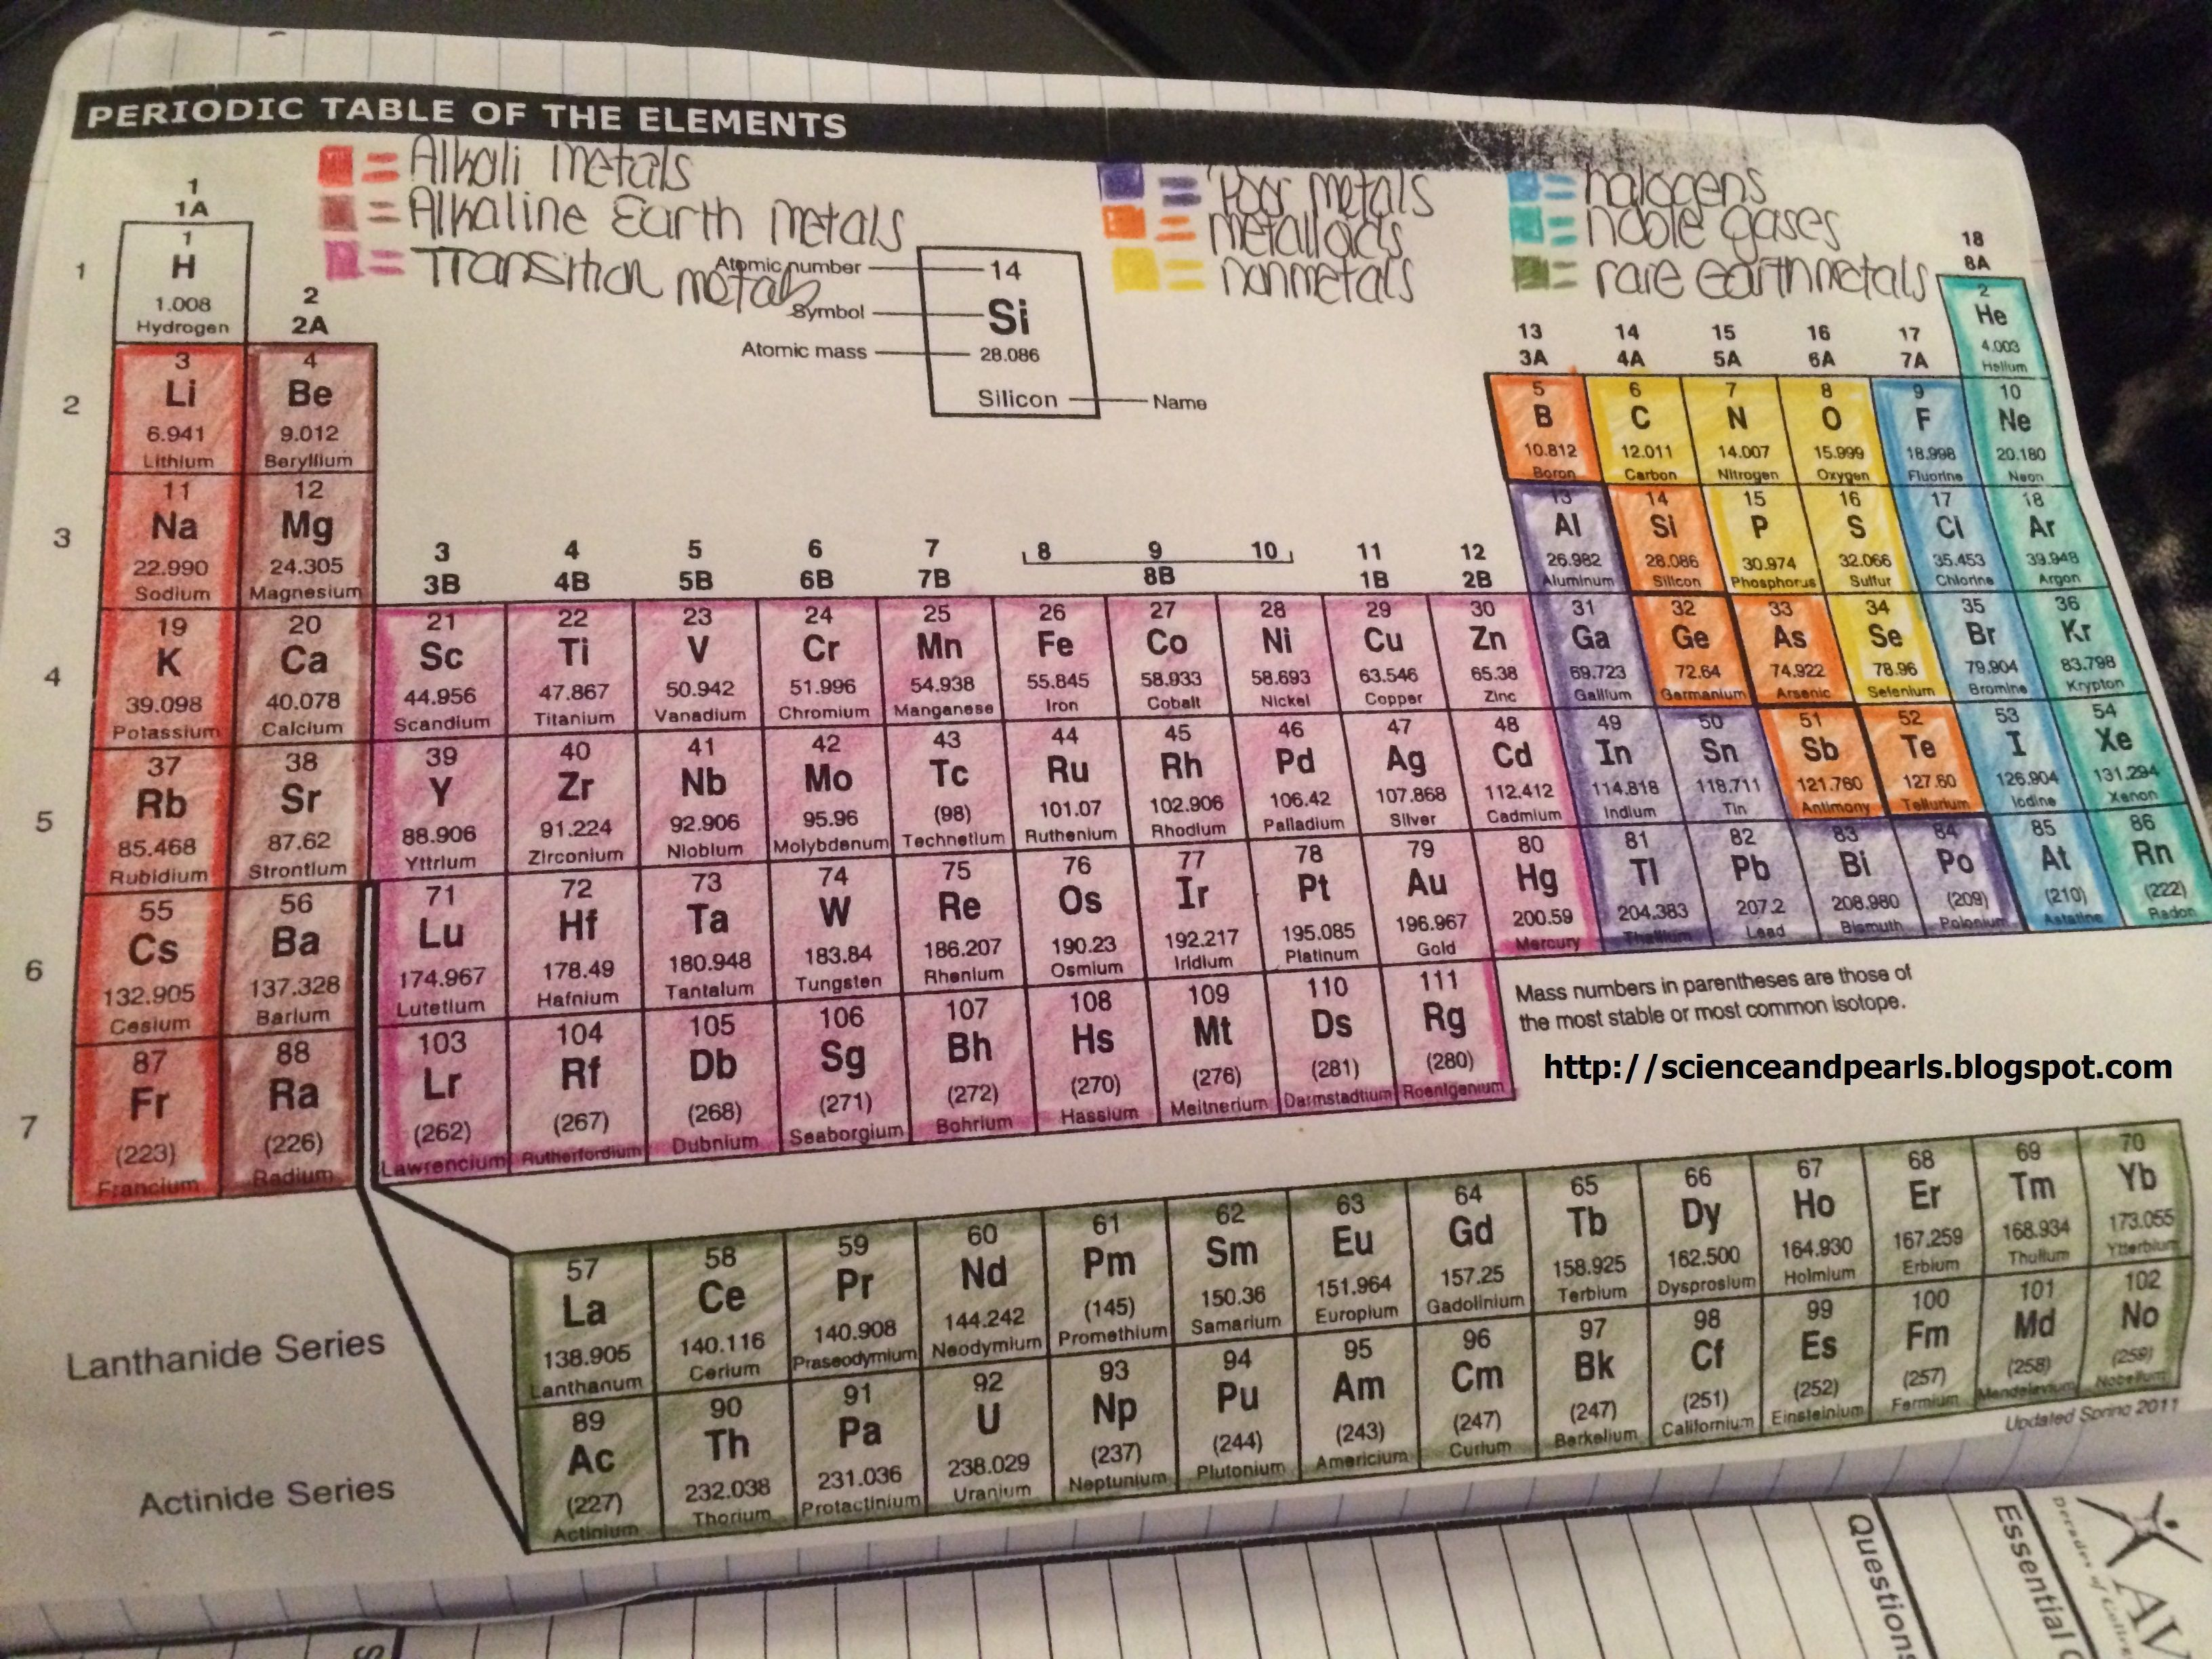 Coloring the Periodic Table Families. We did this along